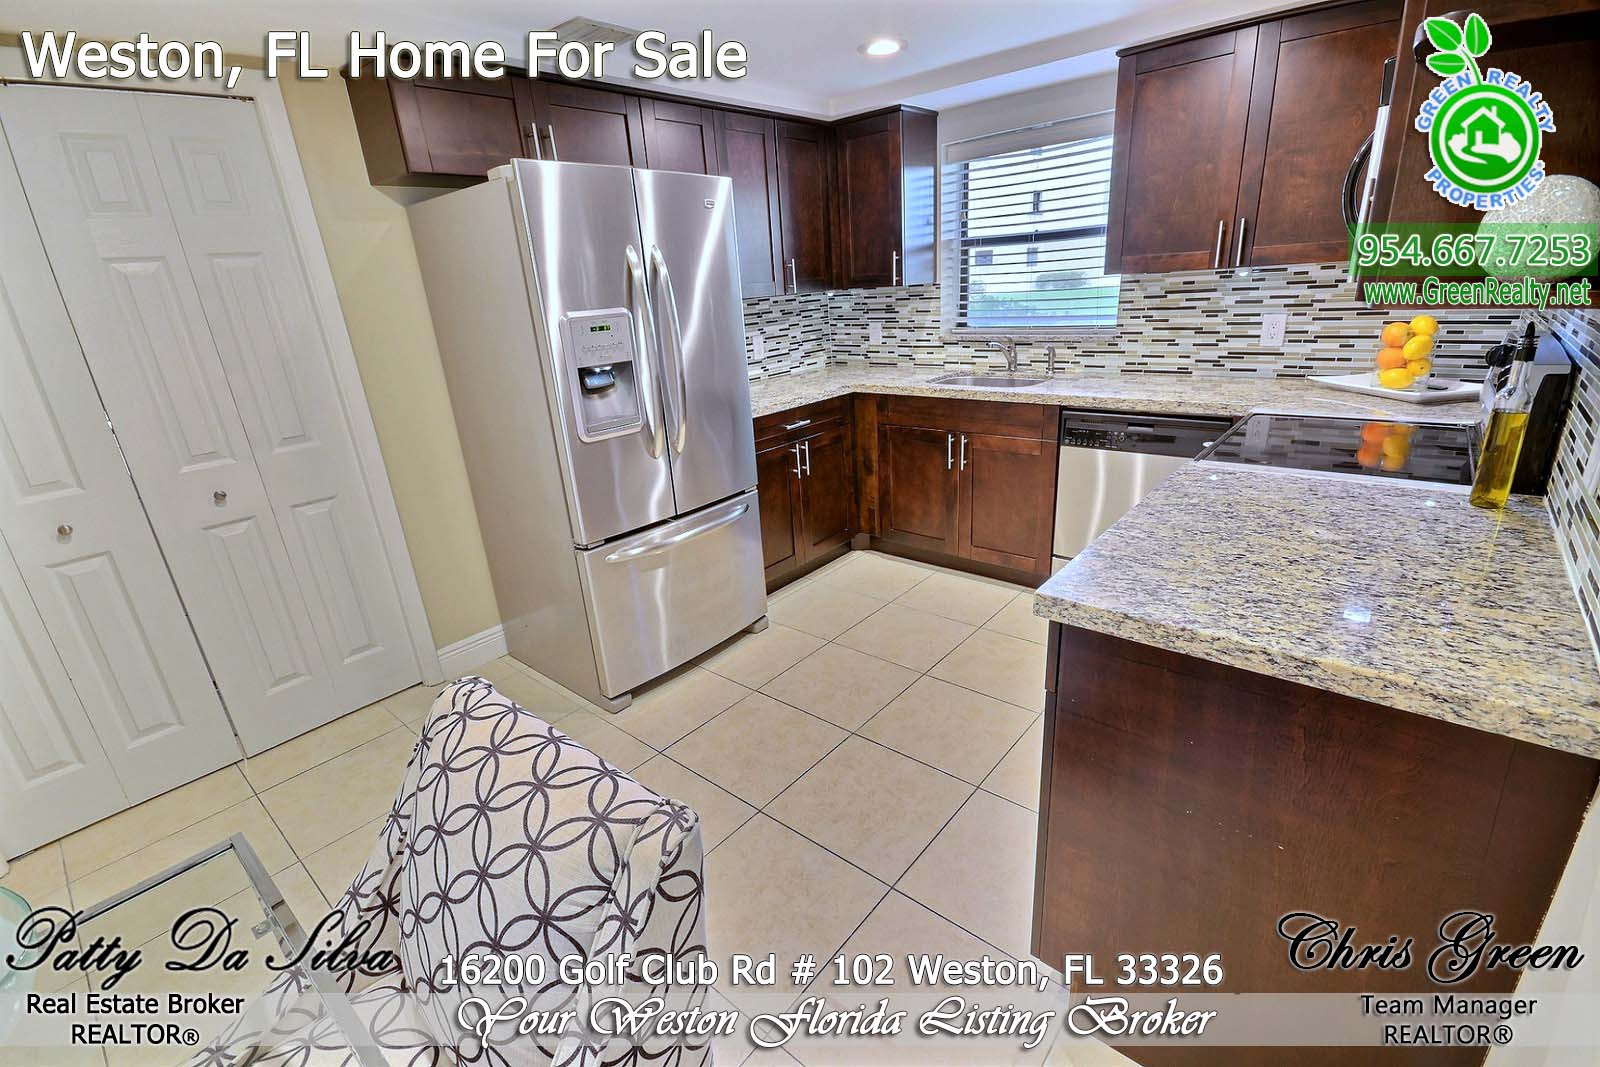 12 16200 Golf Club Rd, Unit 102, Weston FL 33326 (12)